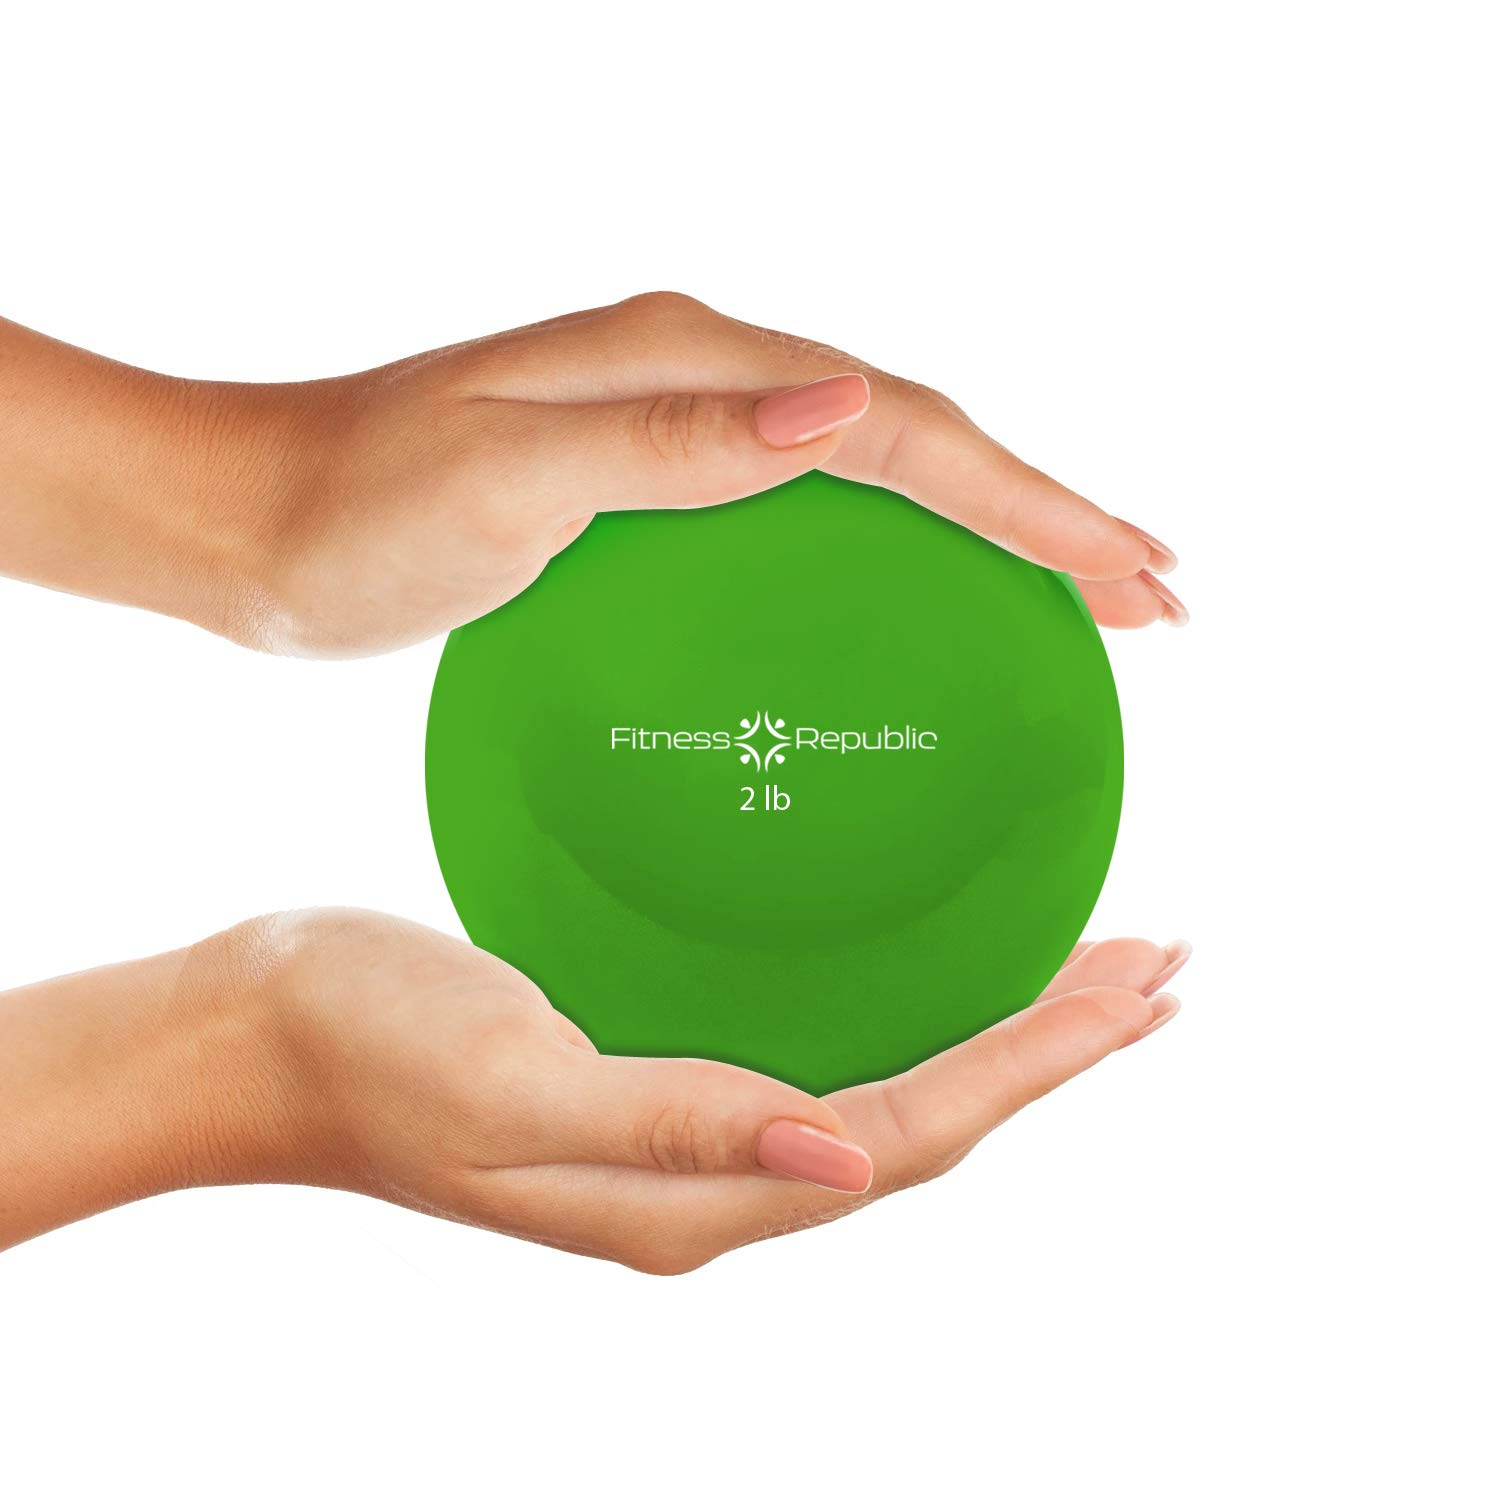 Small Fitness Toning Ball for Workout Flexible Anti-Burst Fitness Toning Ball for Pilates Exercises and Physical Therapy Fitness Republic Pilates Weighted Ball